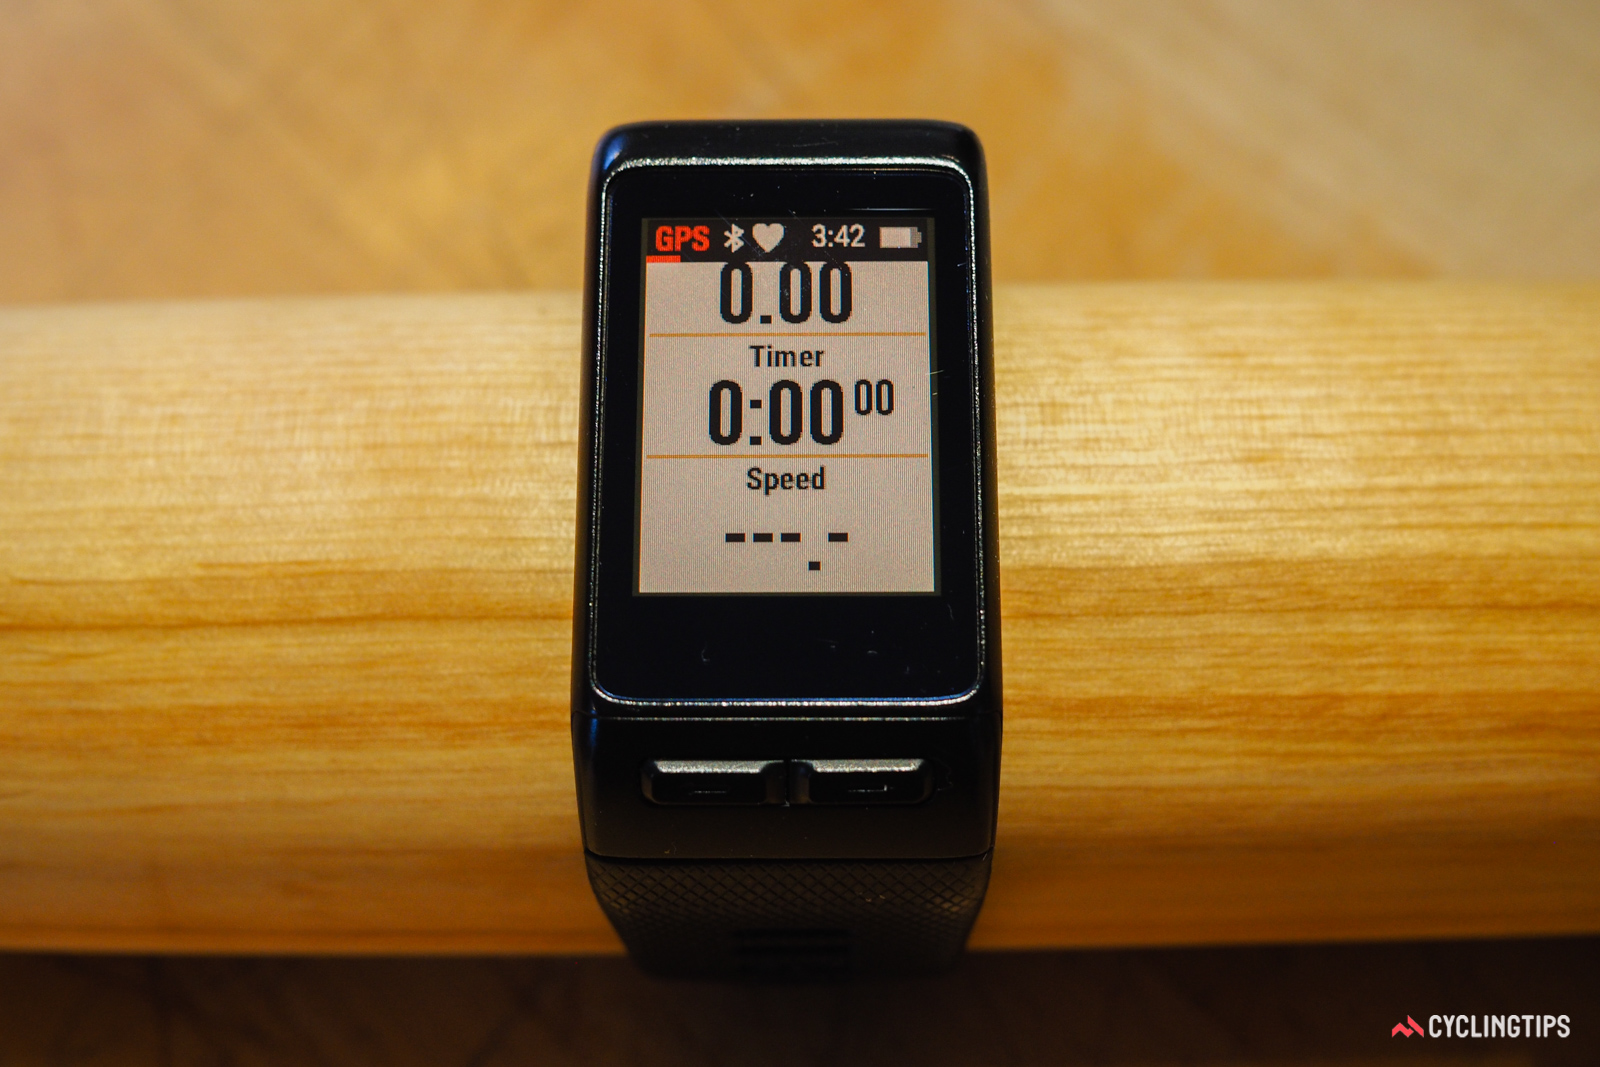 The Garmin Vivoactive HR's cycling data screens can't be customized, but they're at least much more useful than the ones on the Fitbit Surge.